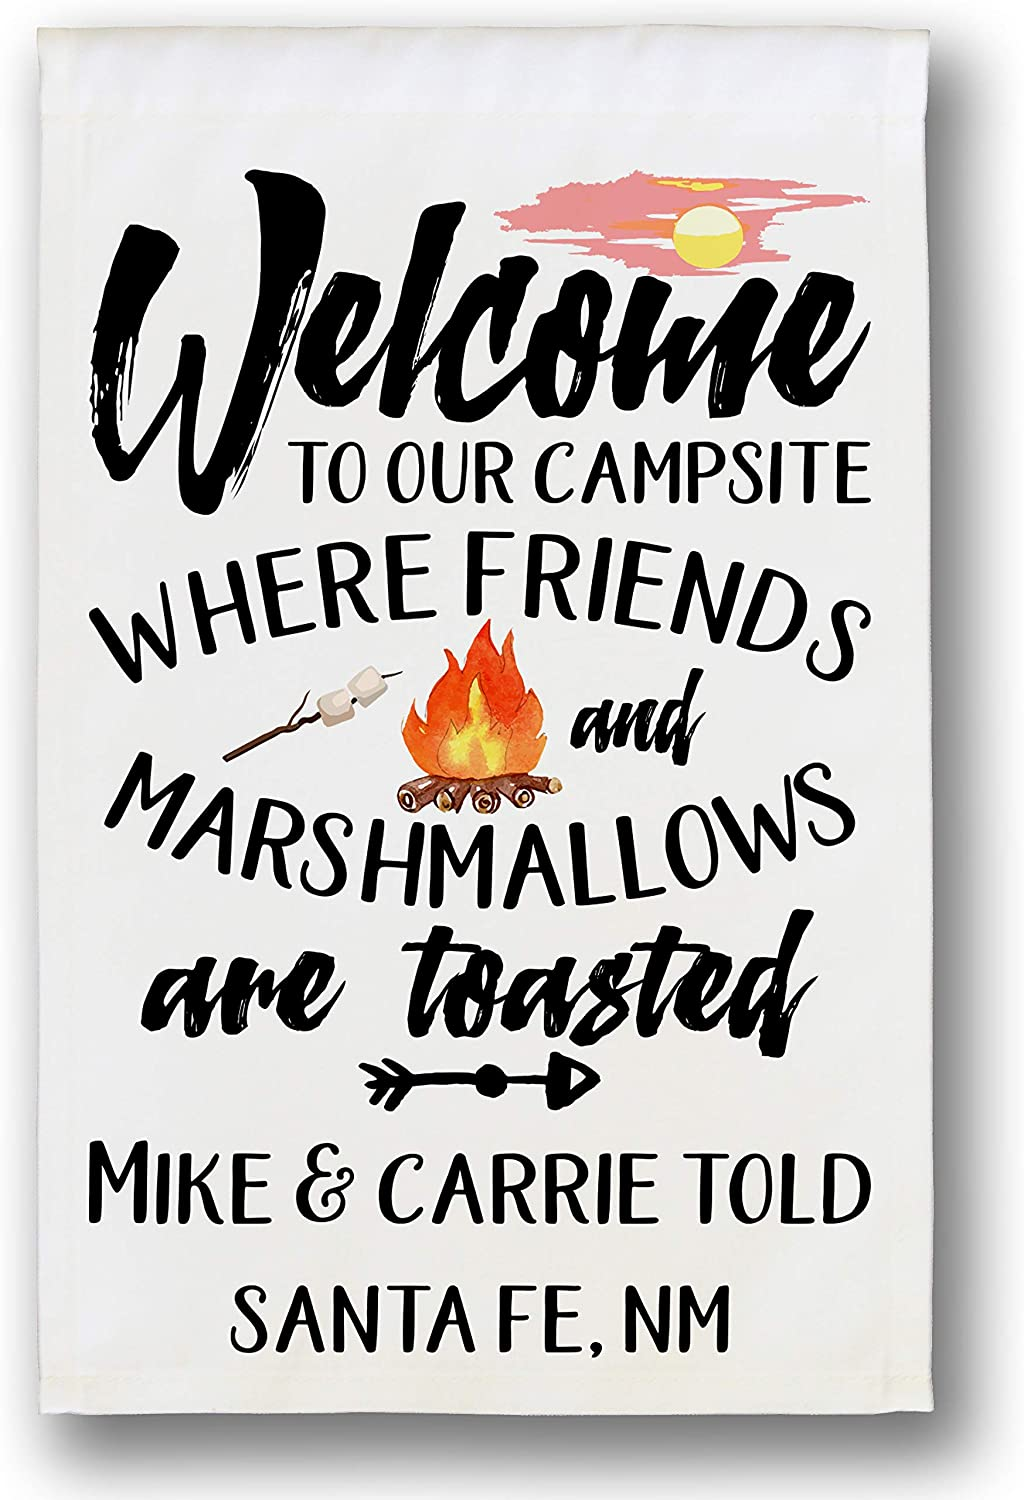 Happy Camper World Personalized Camping Flag, Welcome to Our Campsite Where Friends and Marshmallows are Toasted, Plus 2 Lines of Custom Text, White Fabric